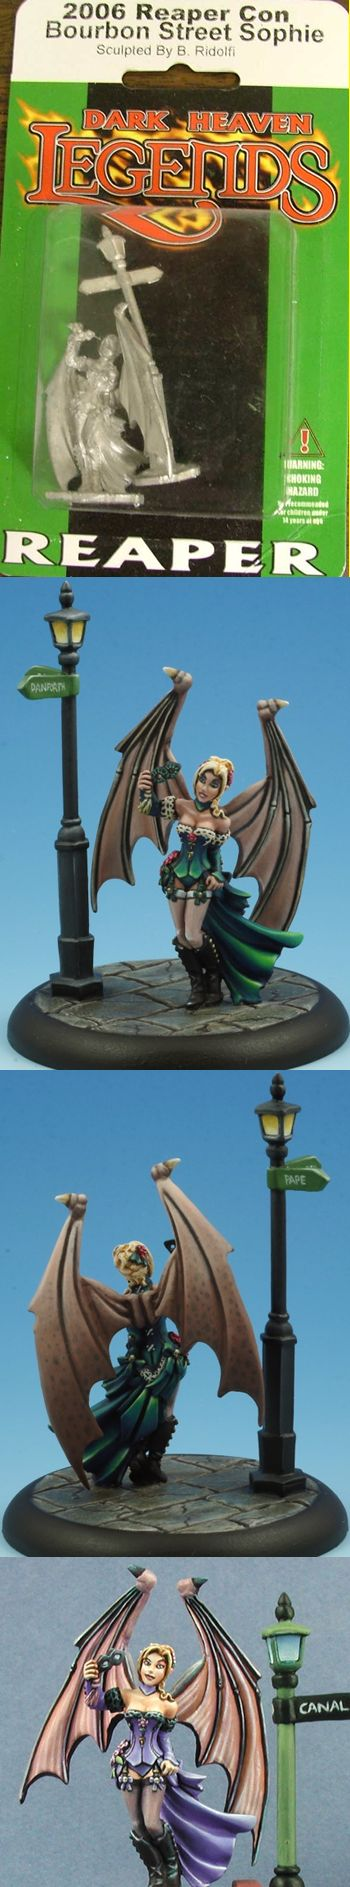 Reaper Con 'Bourbon Street' Sophie '06 (Limited Edition, Discontinued), 1503 Reaper Miniatures, Inc.